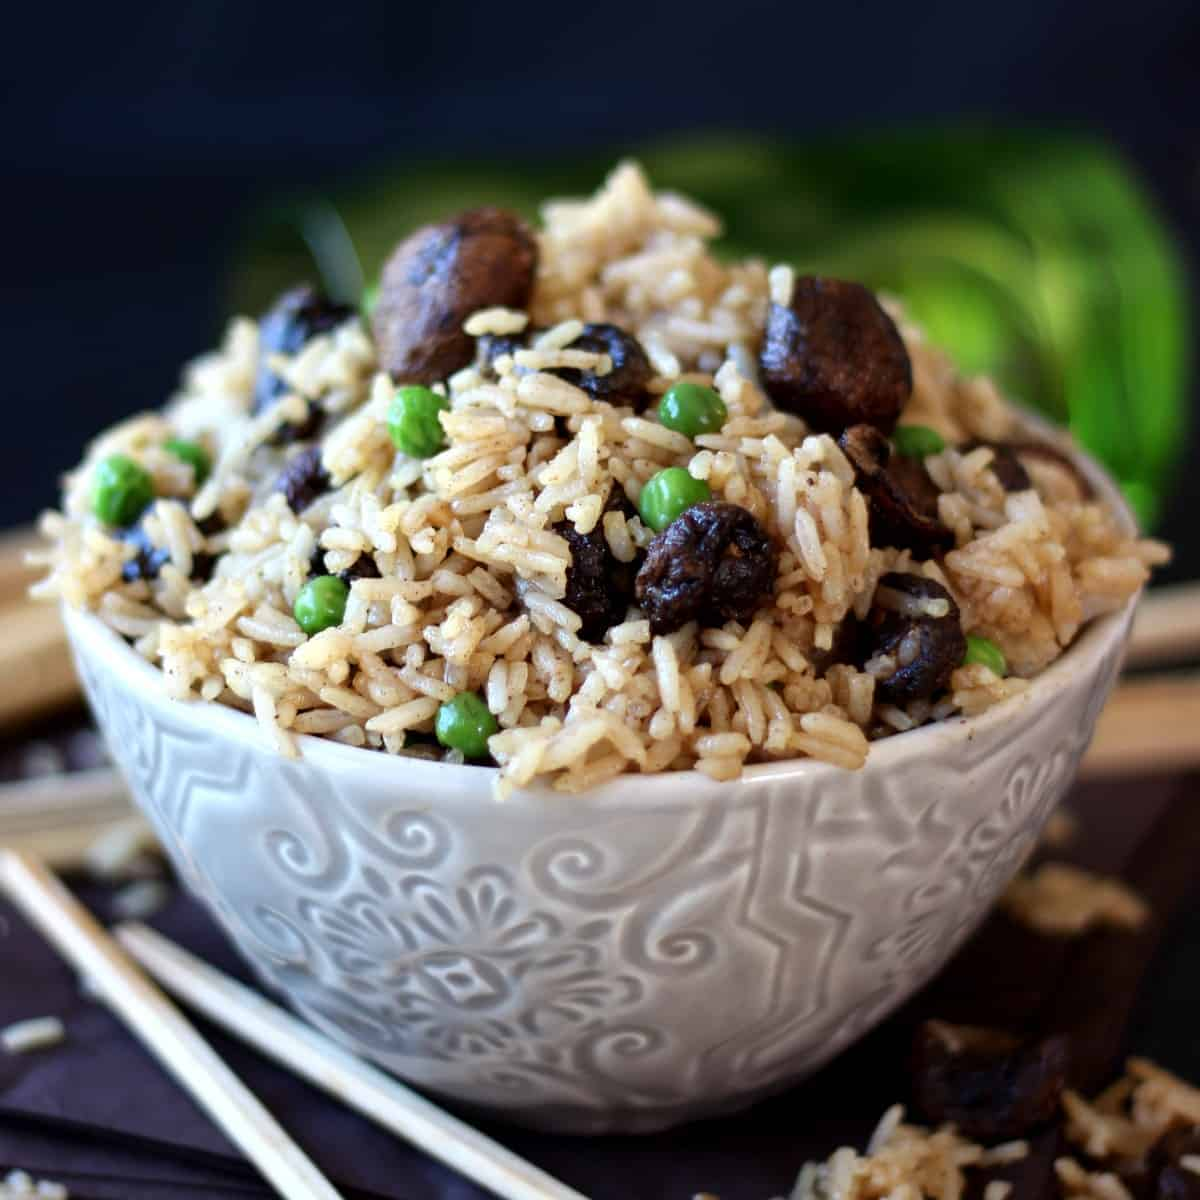 Gorgeous thai sticky rice with mushrooms and peas is filling a patterned bowl with chopsticks on the side.